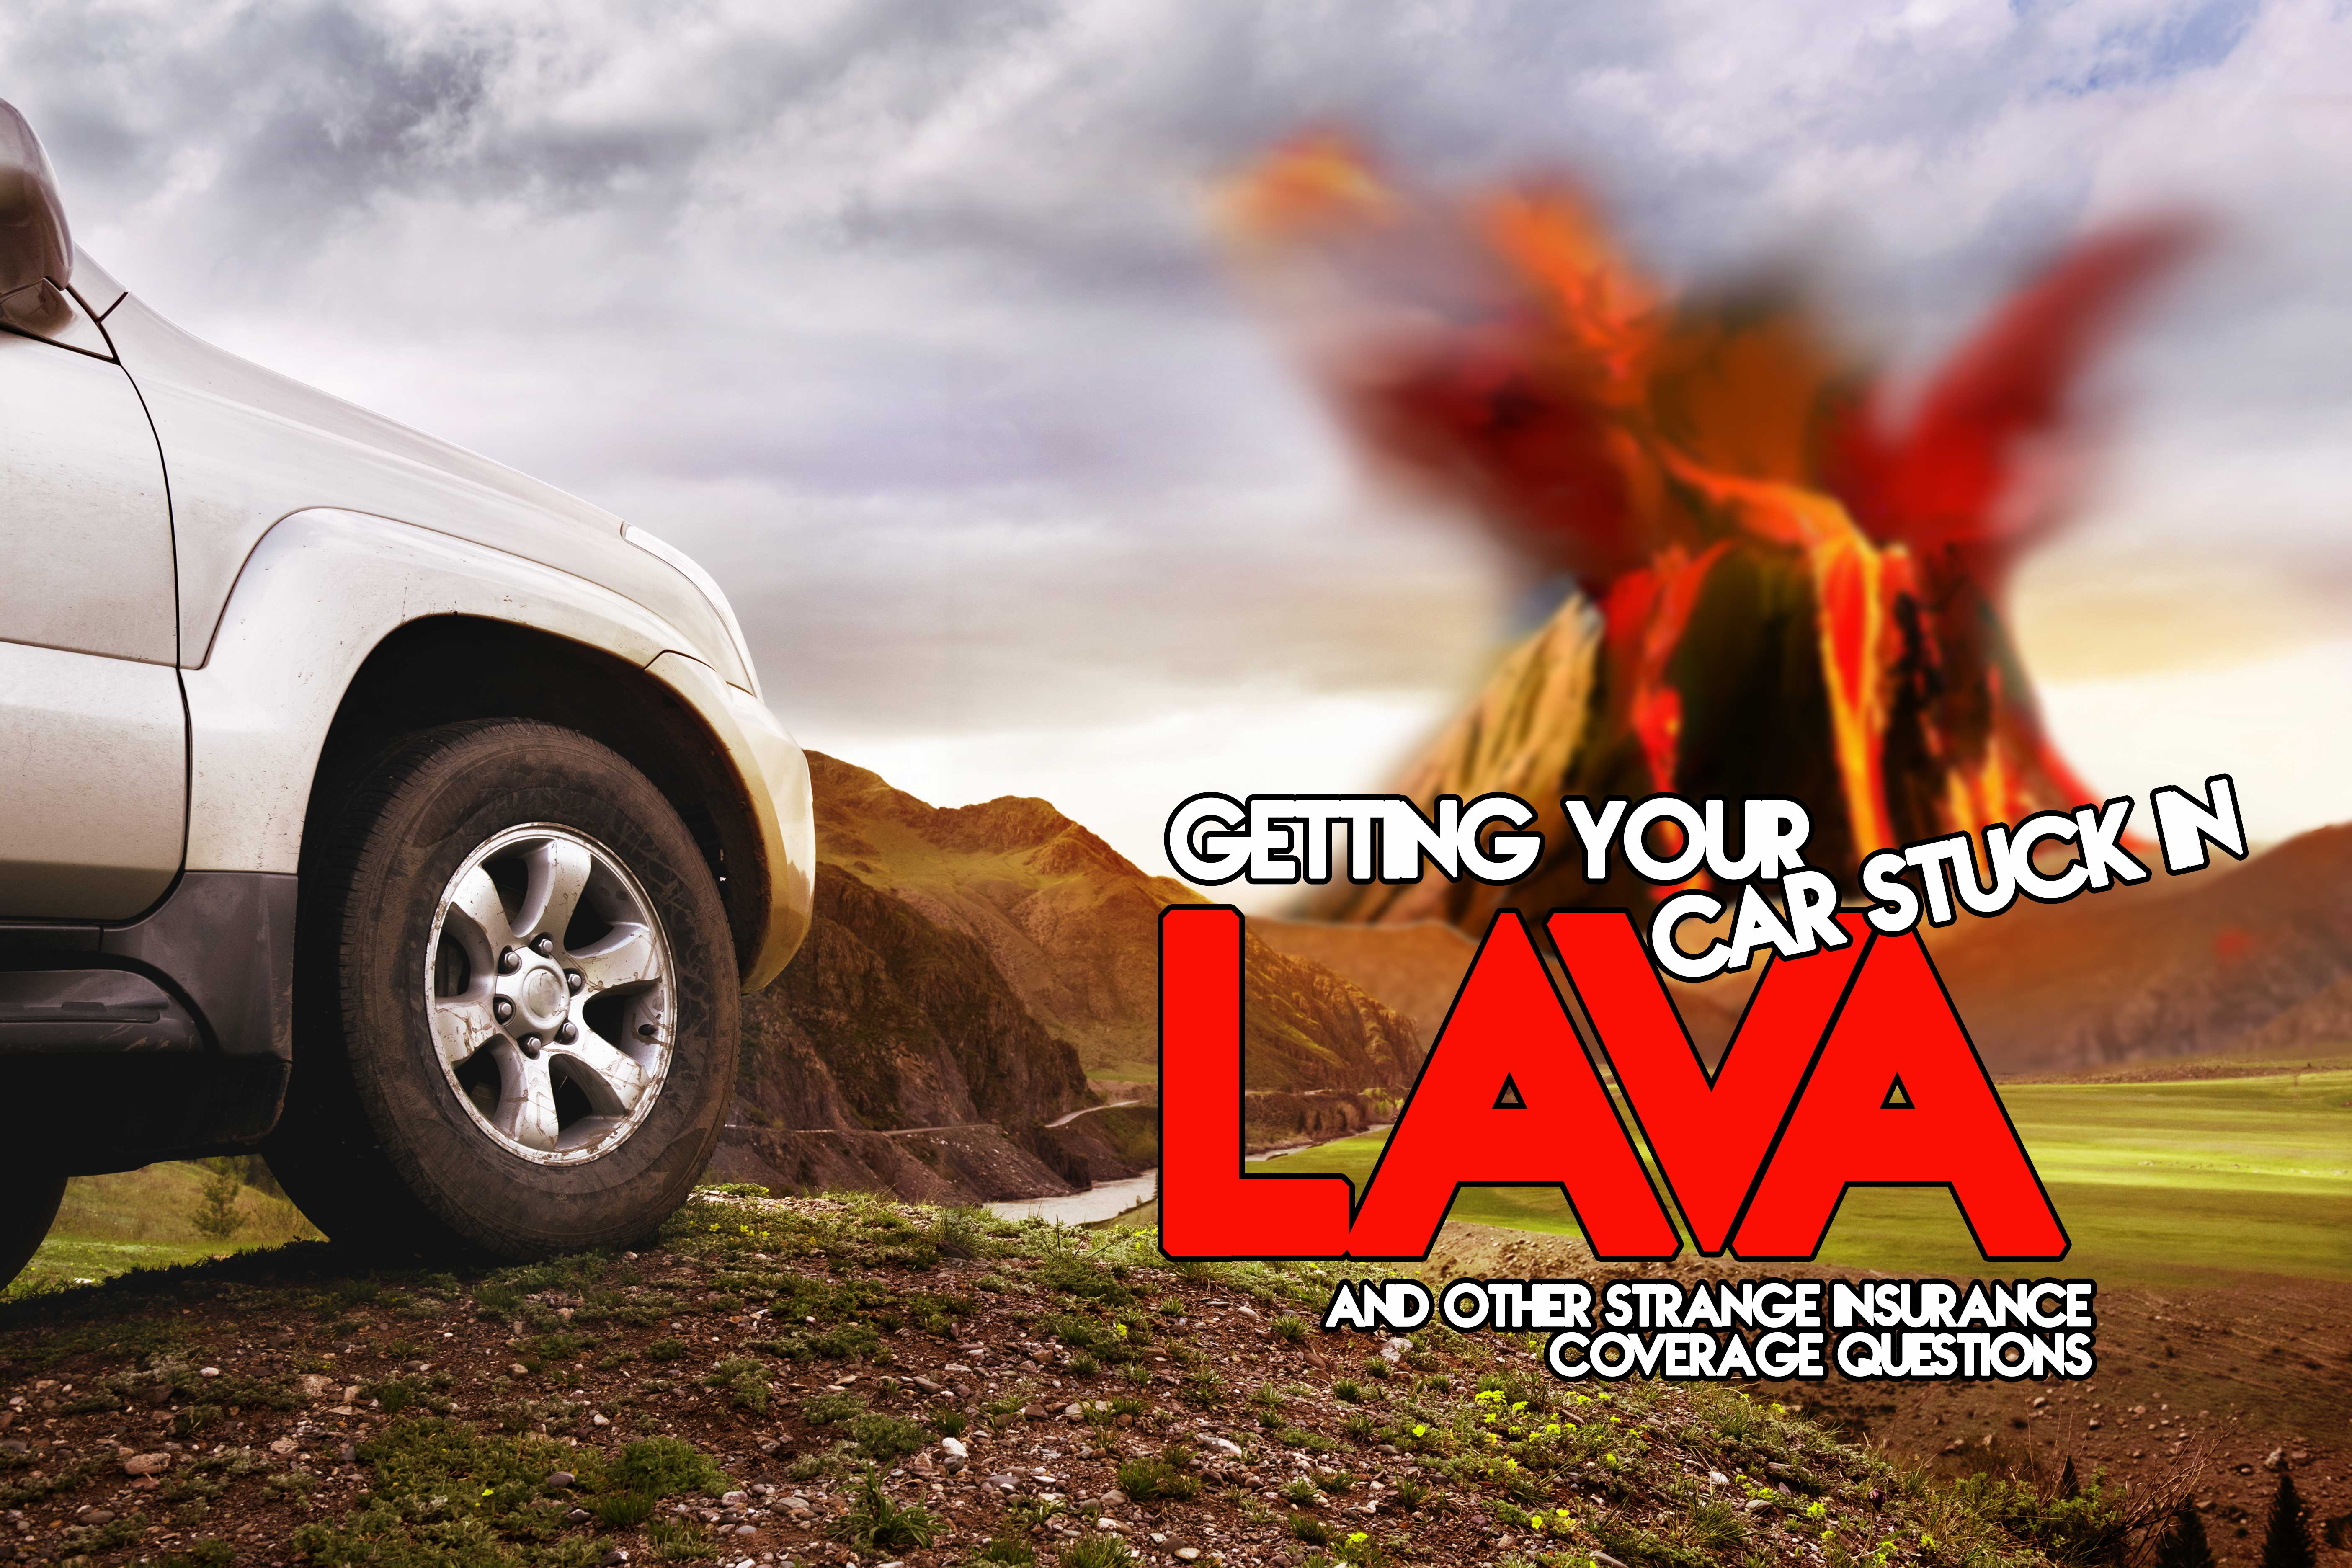 Getting Your Car Stuck in Lava and Other Strange Insurance Coverage Questions